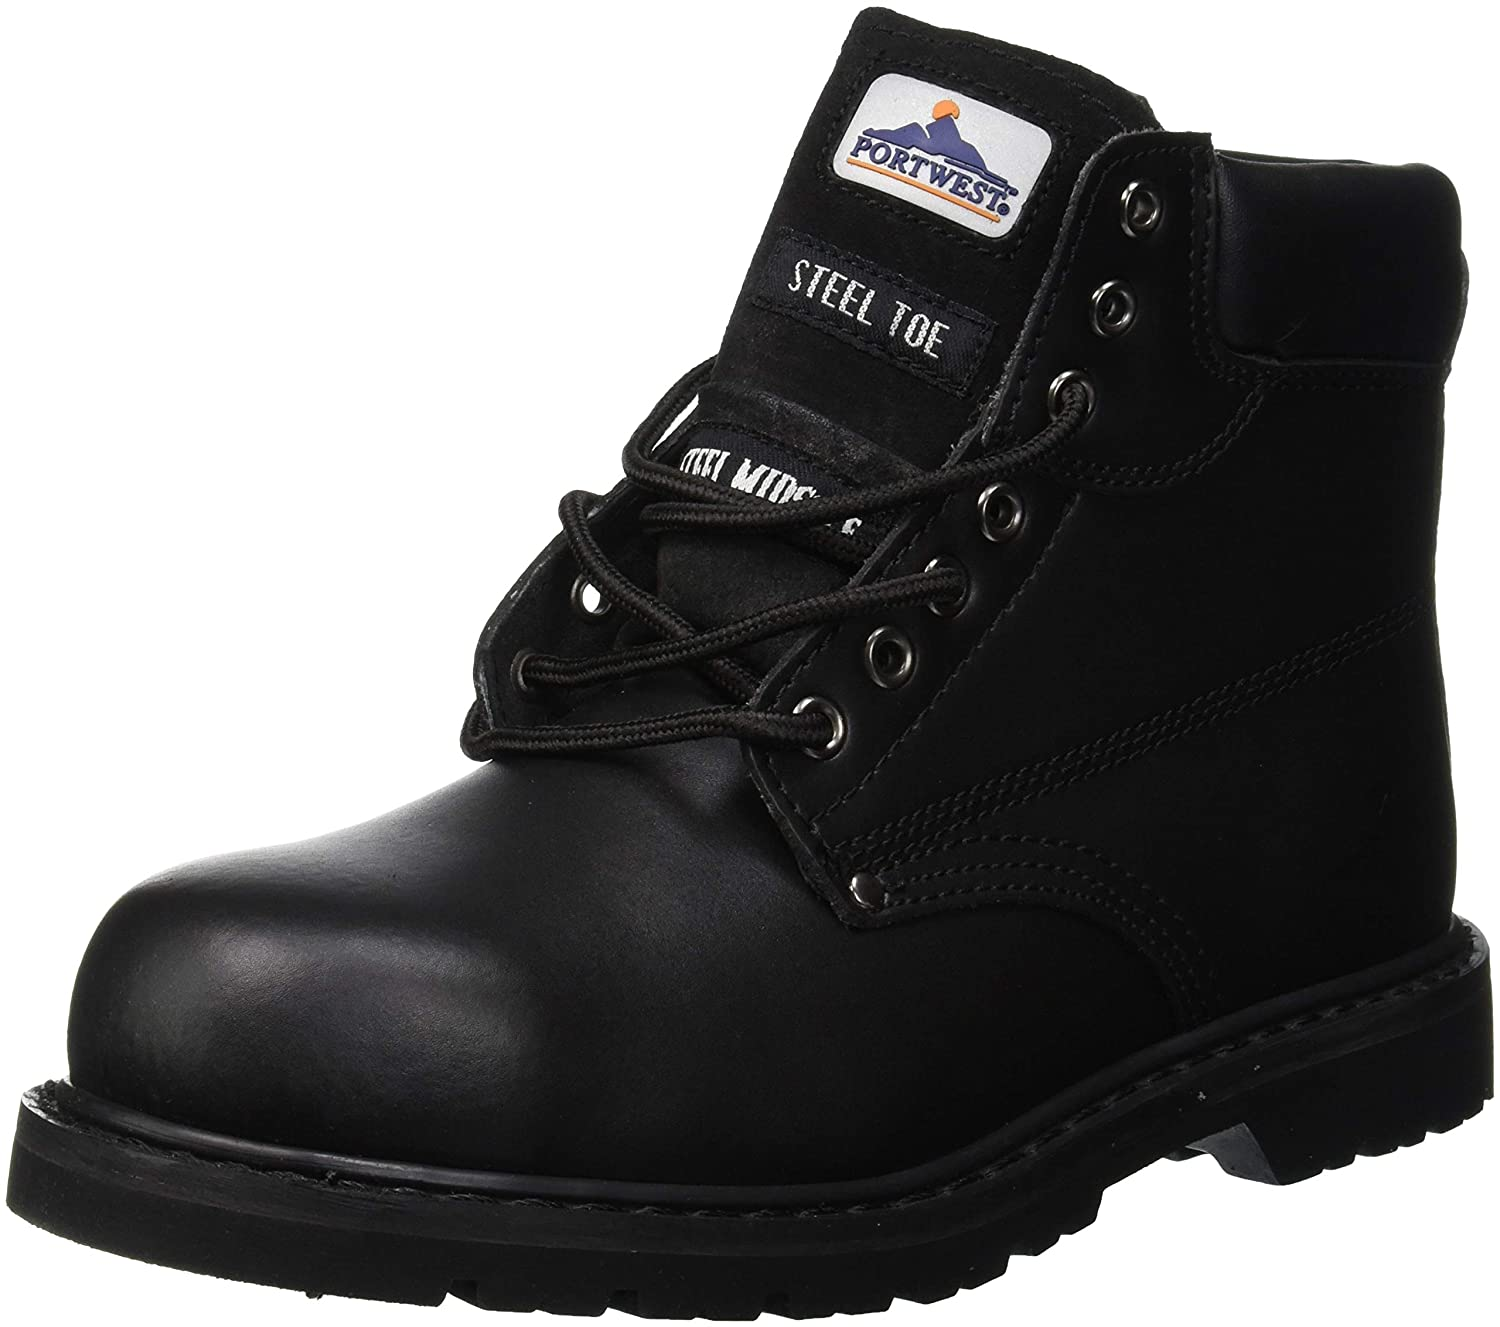 Portwest FW16 - Boot welted 41/7 PAS, color Negro, talla 41